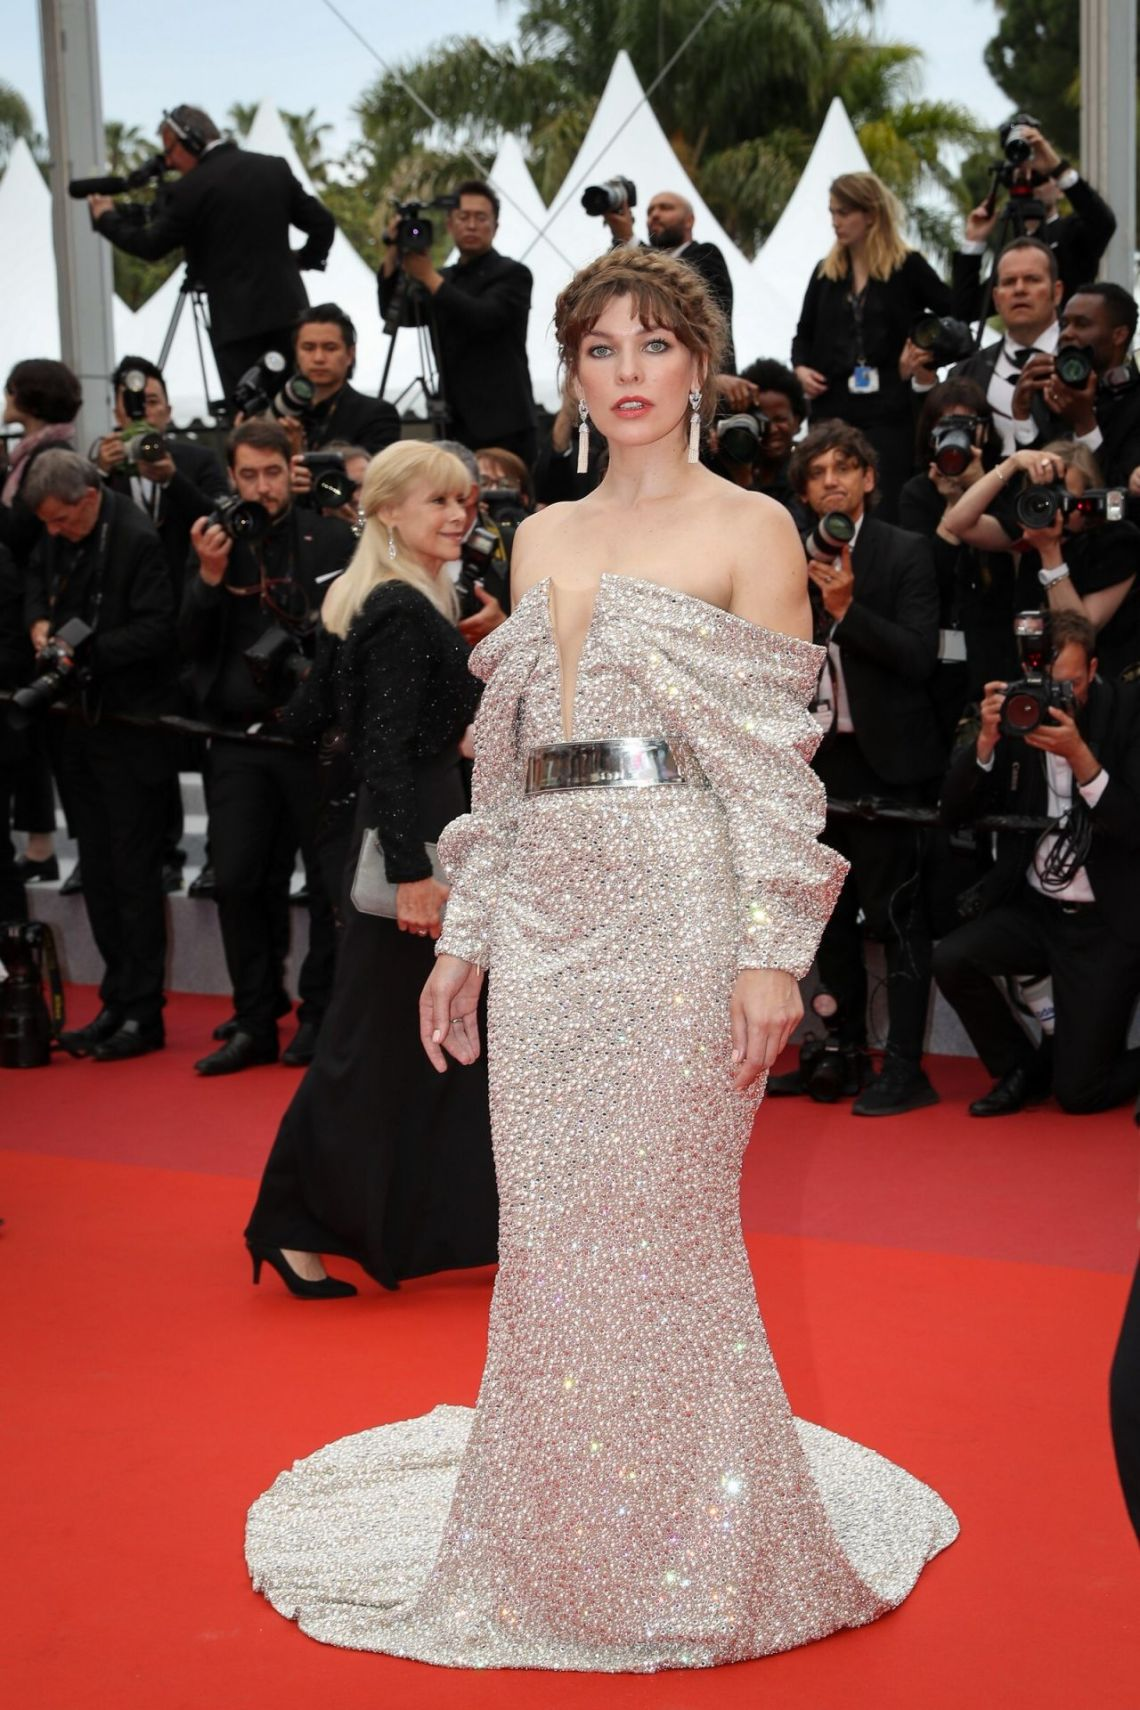 milla-jovovich-sibyl-red-carpet-at-cannes-film-festival-4balmain